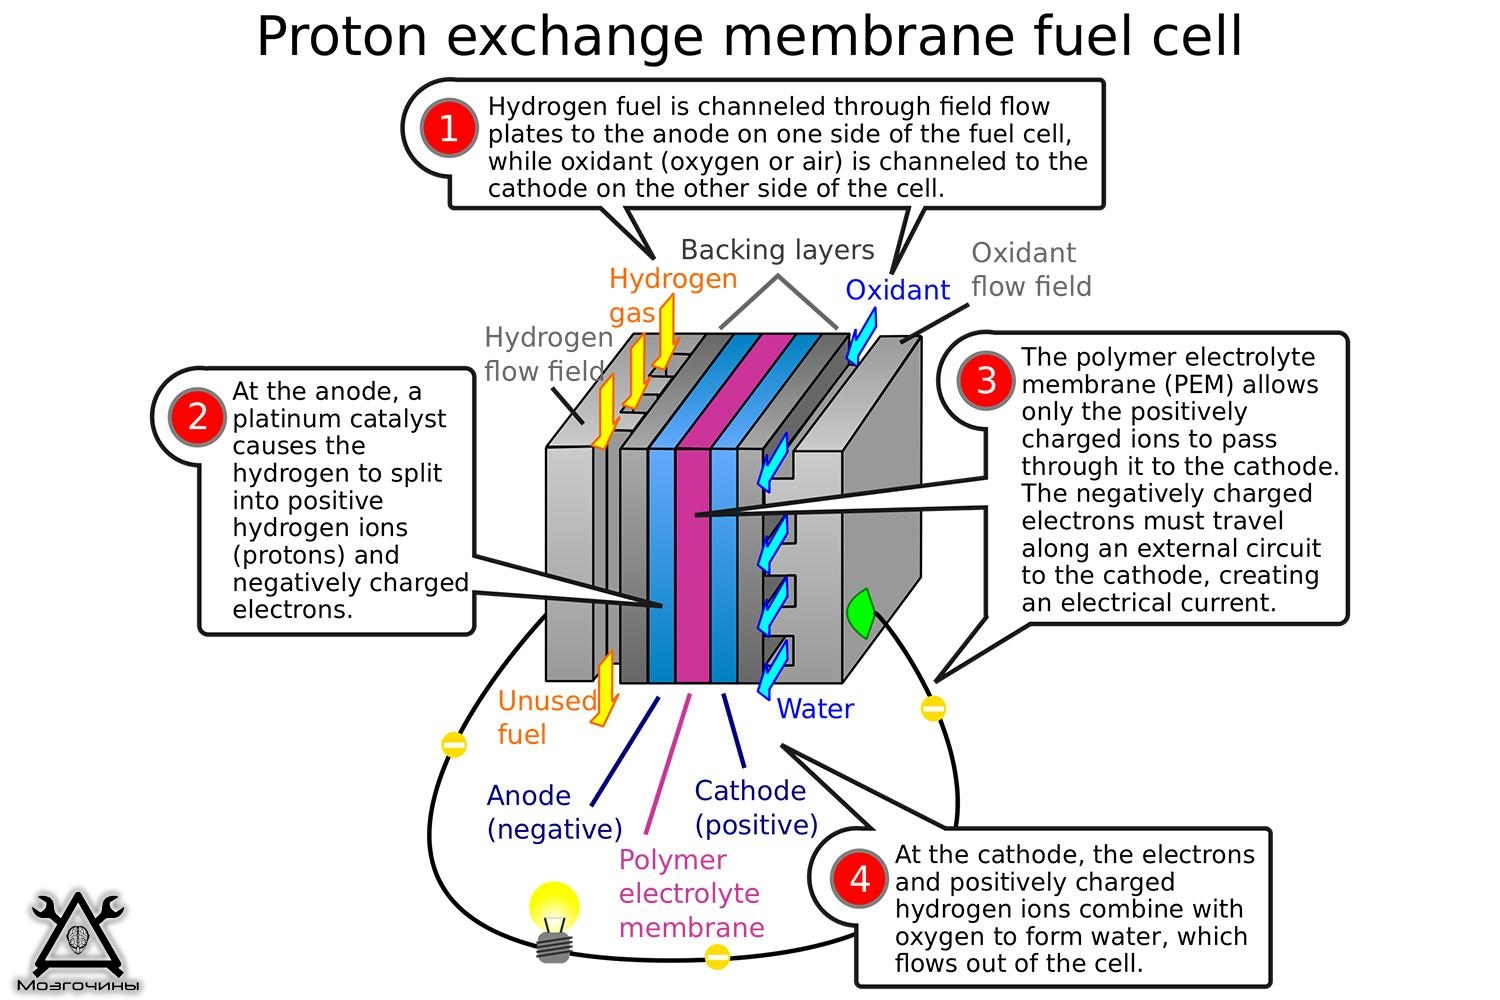 pem fuel cells Energy demands are growing and polymers play an integral role in advancing energy generation technologies currently we focus on synthesizing and characterizing polymer electrolyte membranes for fuel cells: both acidic and alkaline environments.